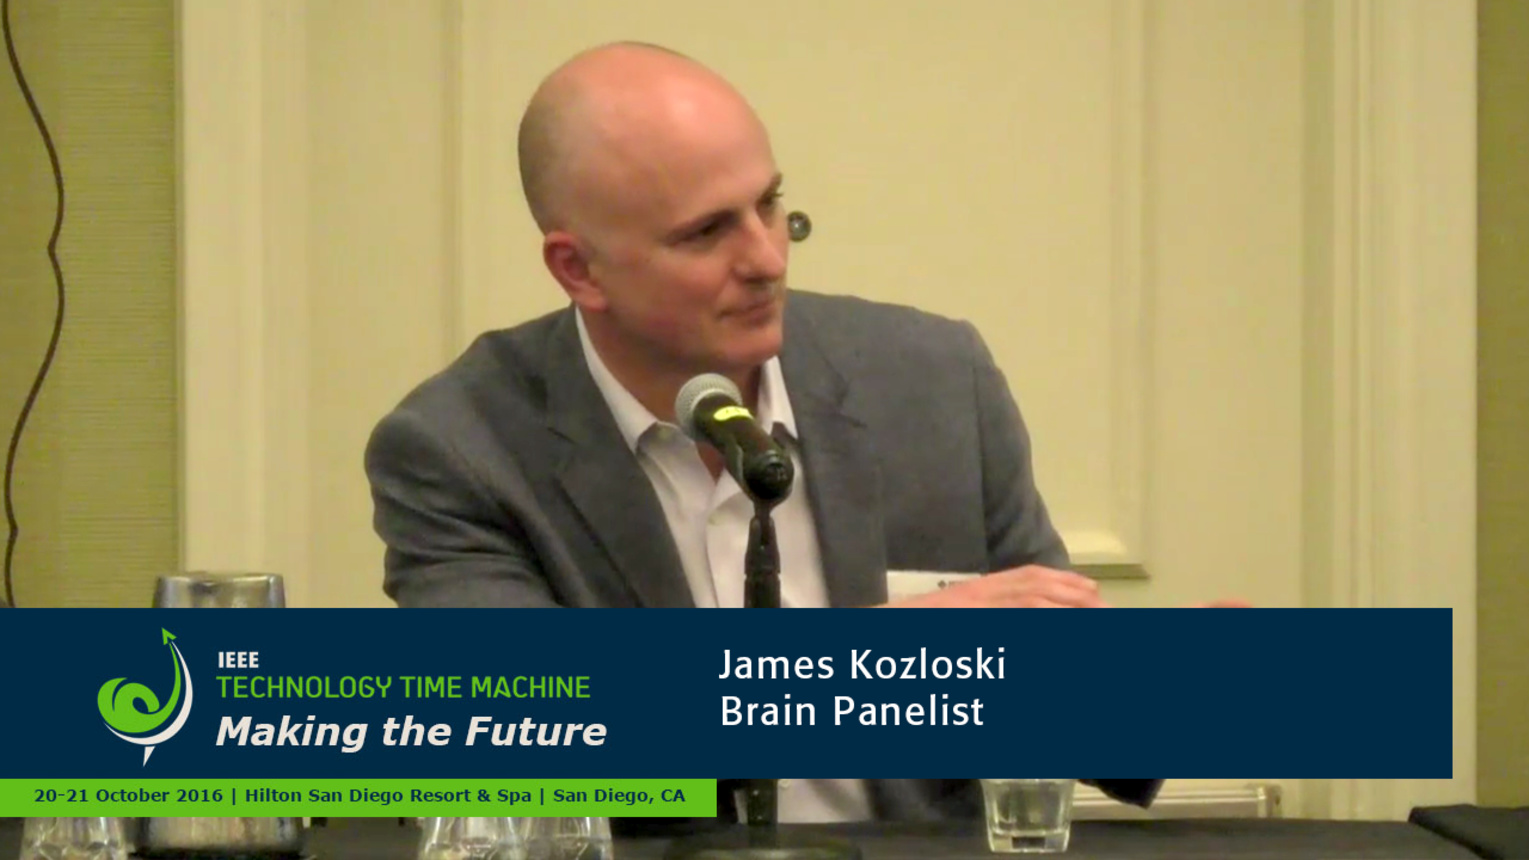 Brain Panelist - James Kozloski: 2016 Technology Time Machine